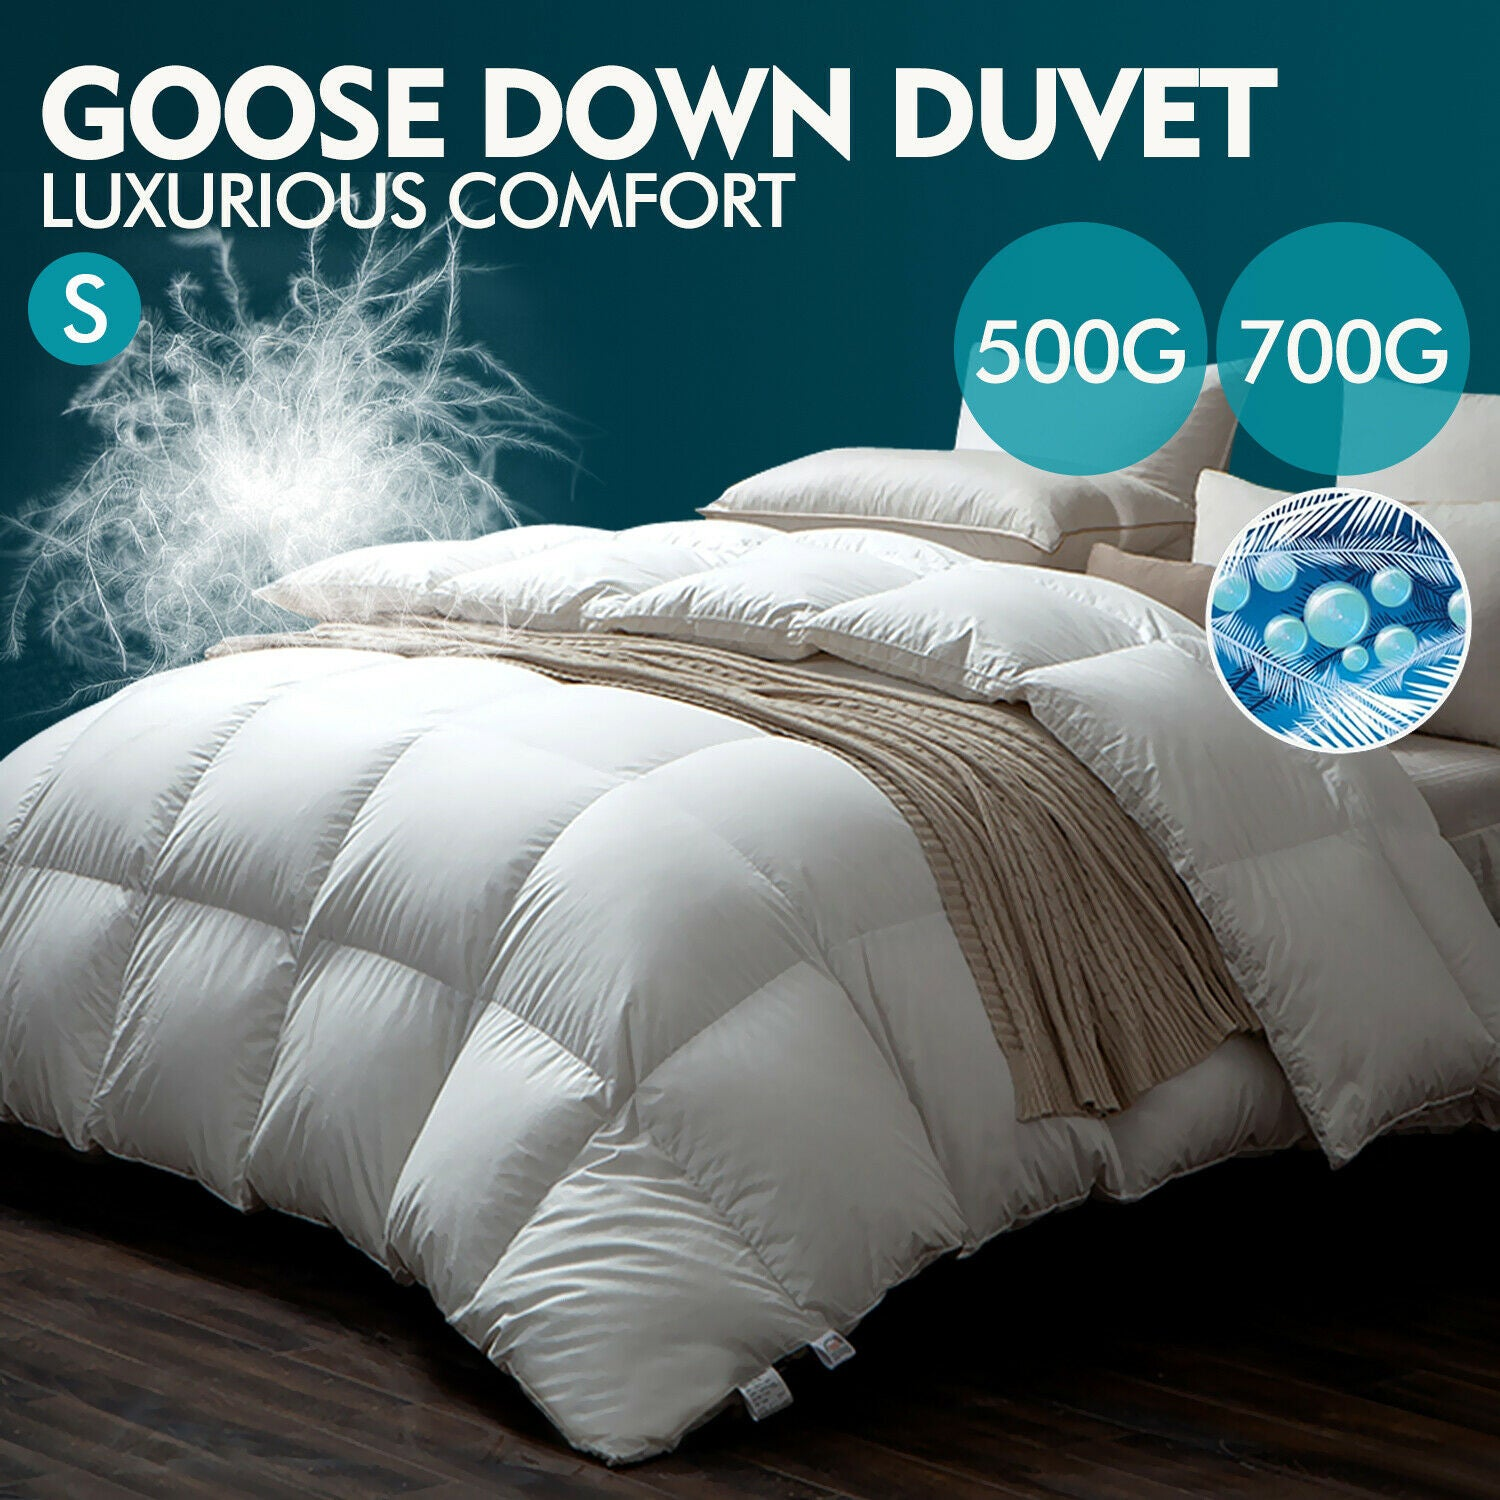 DreamZ 700GSM All Season Goose Down Feather Filling Duvet in Single Size